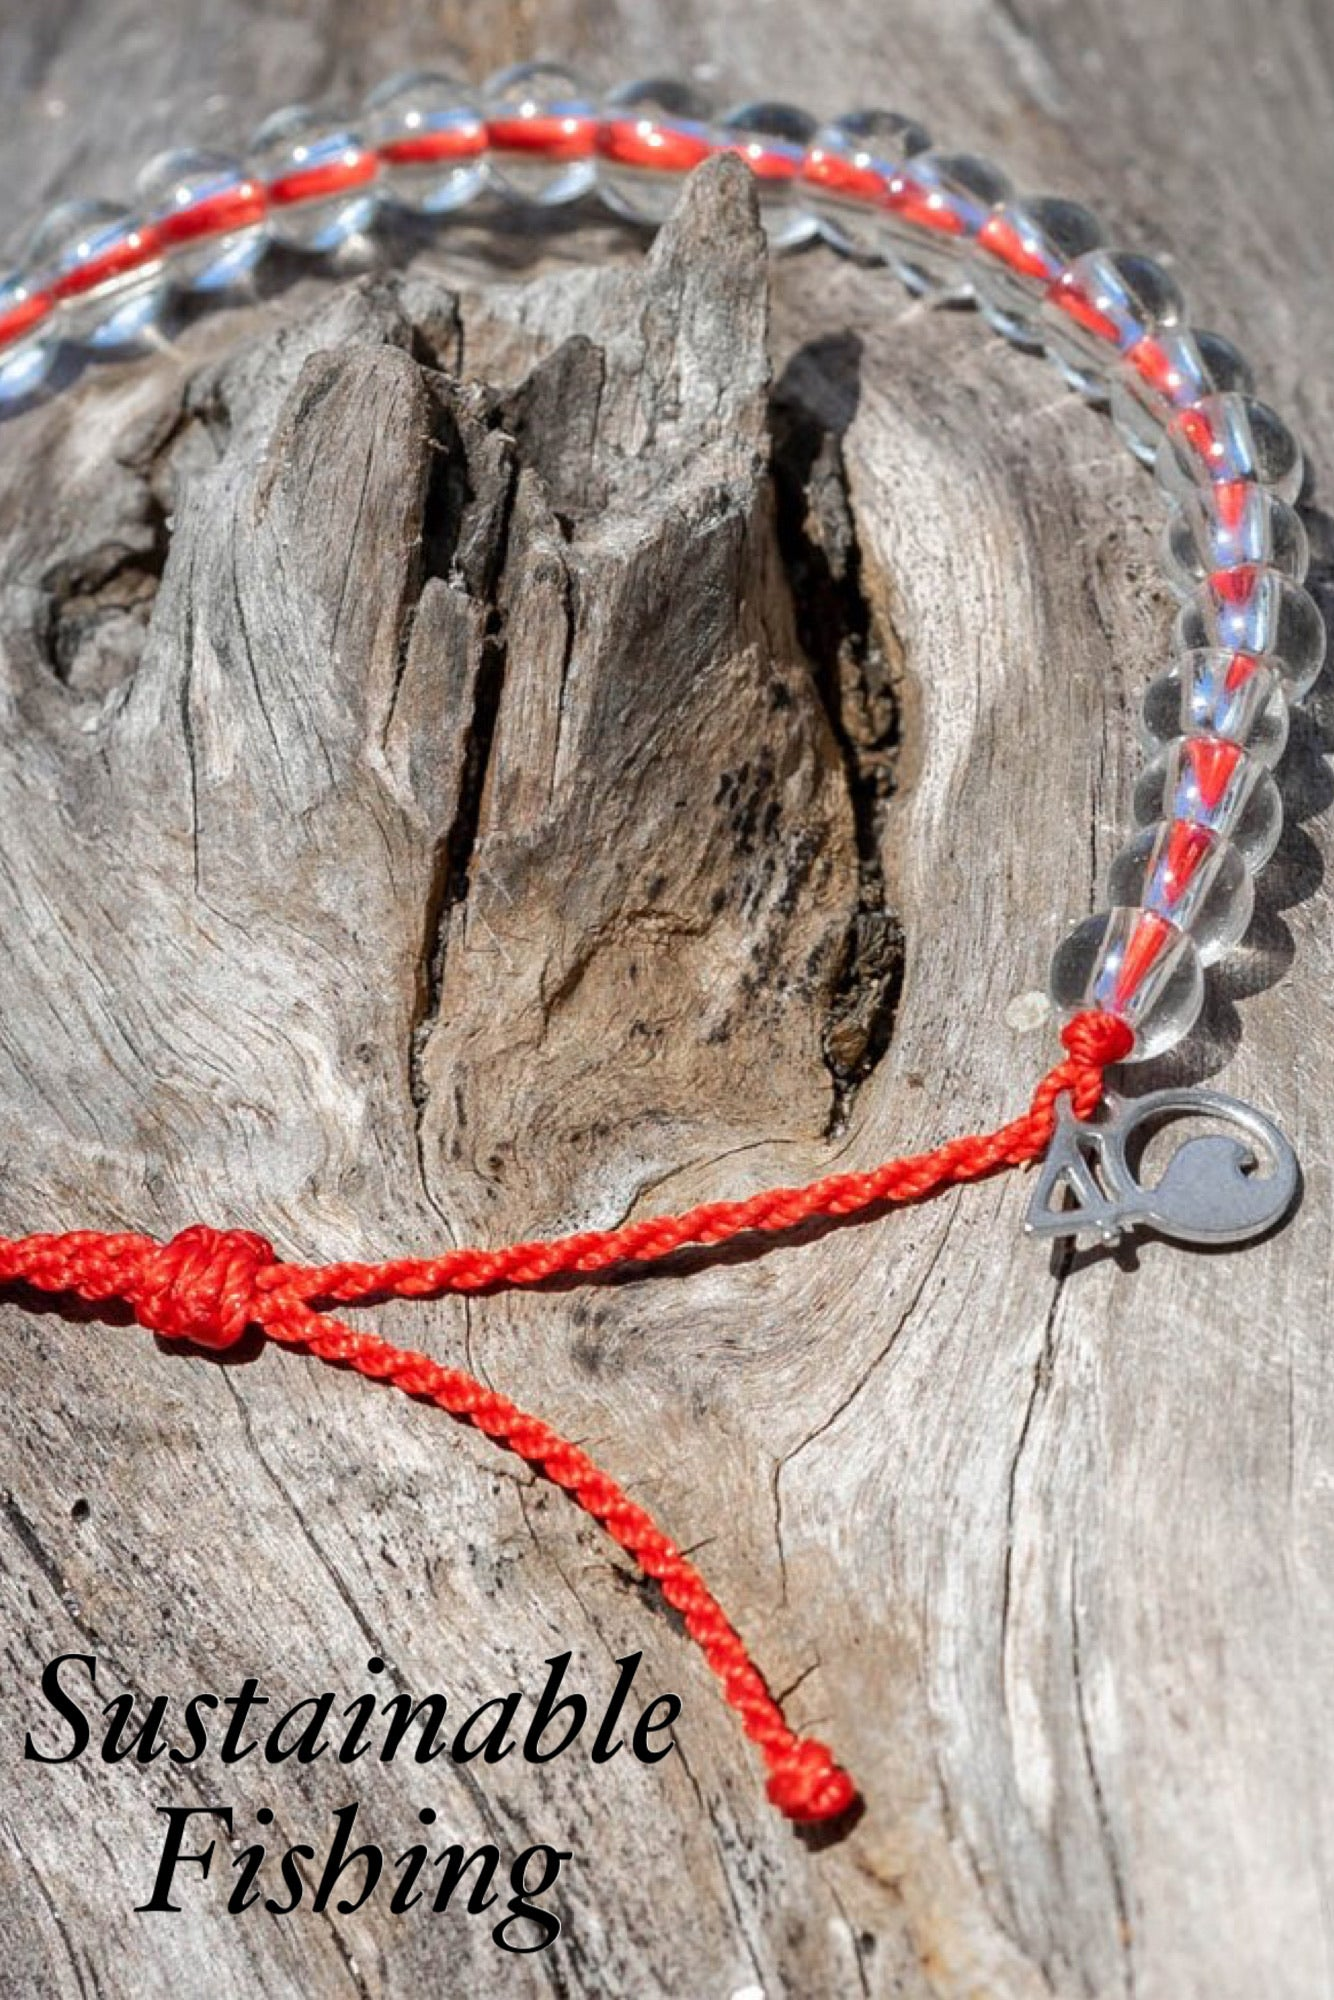 The Sustainable Fishing Bracelet by 4oceans